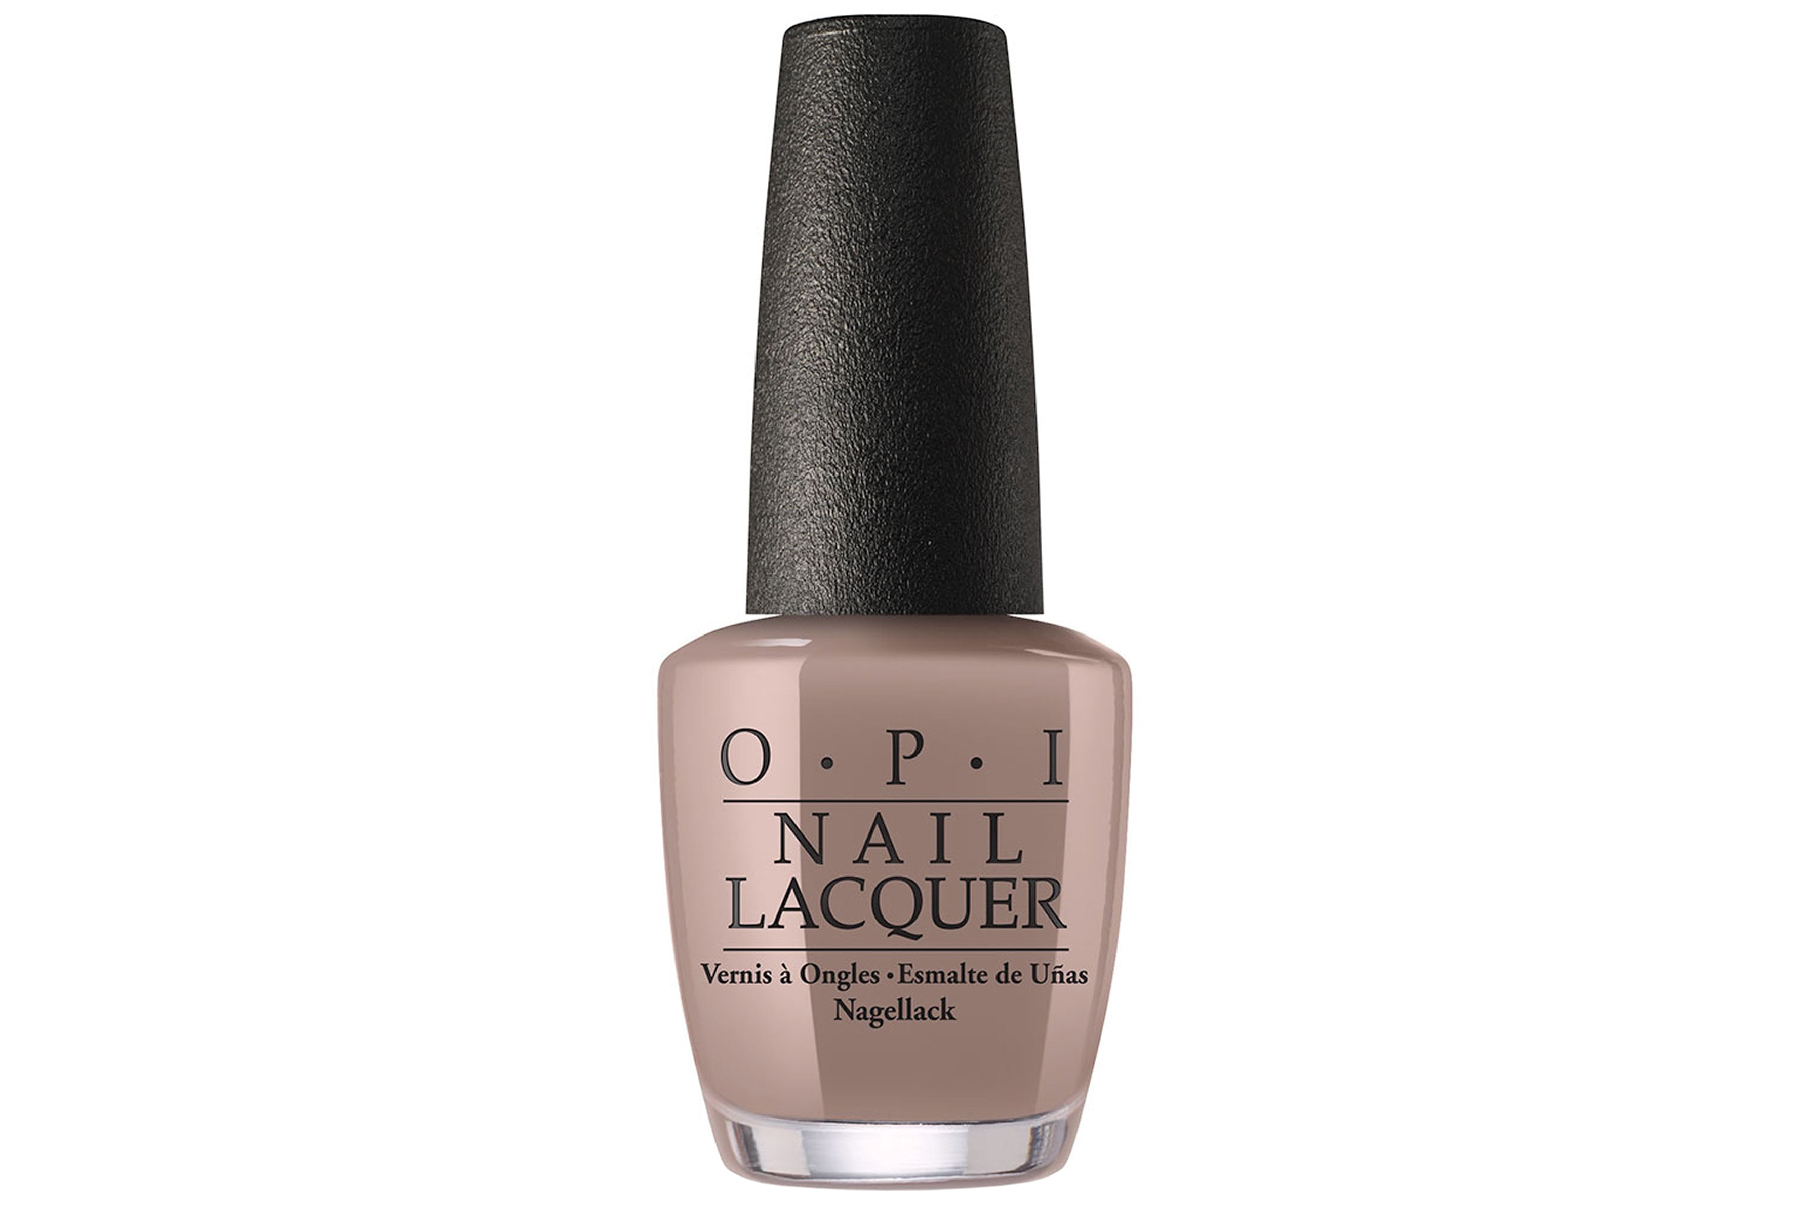 OPI Icelanded a Bottle